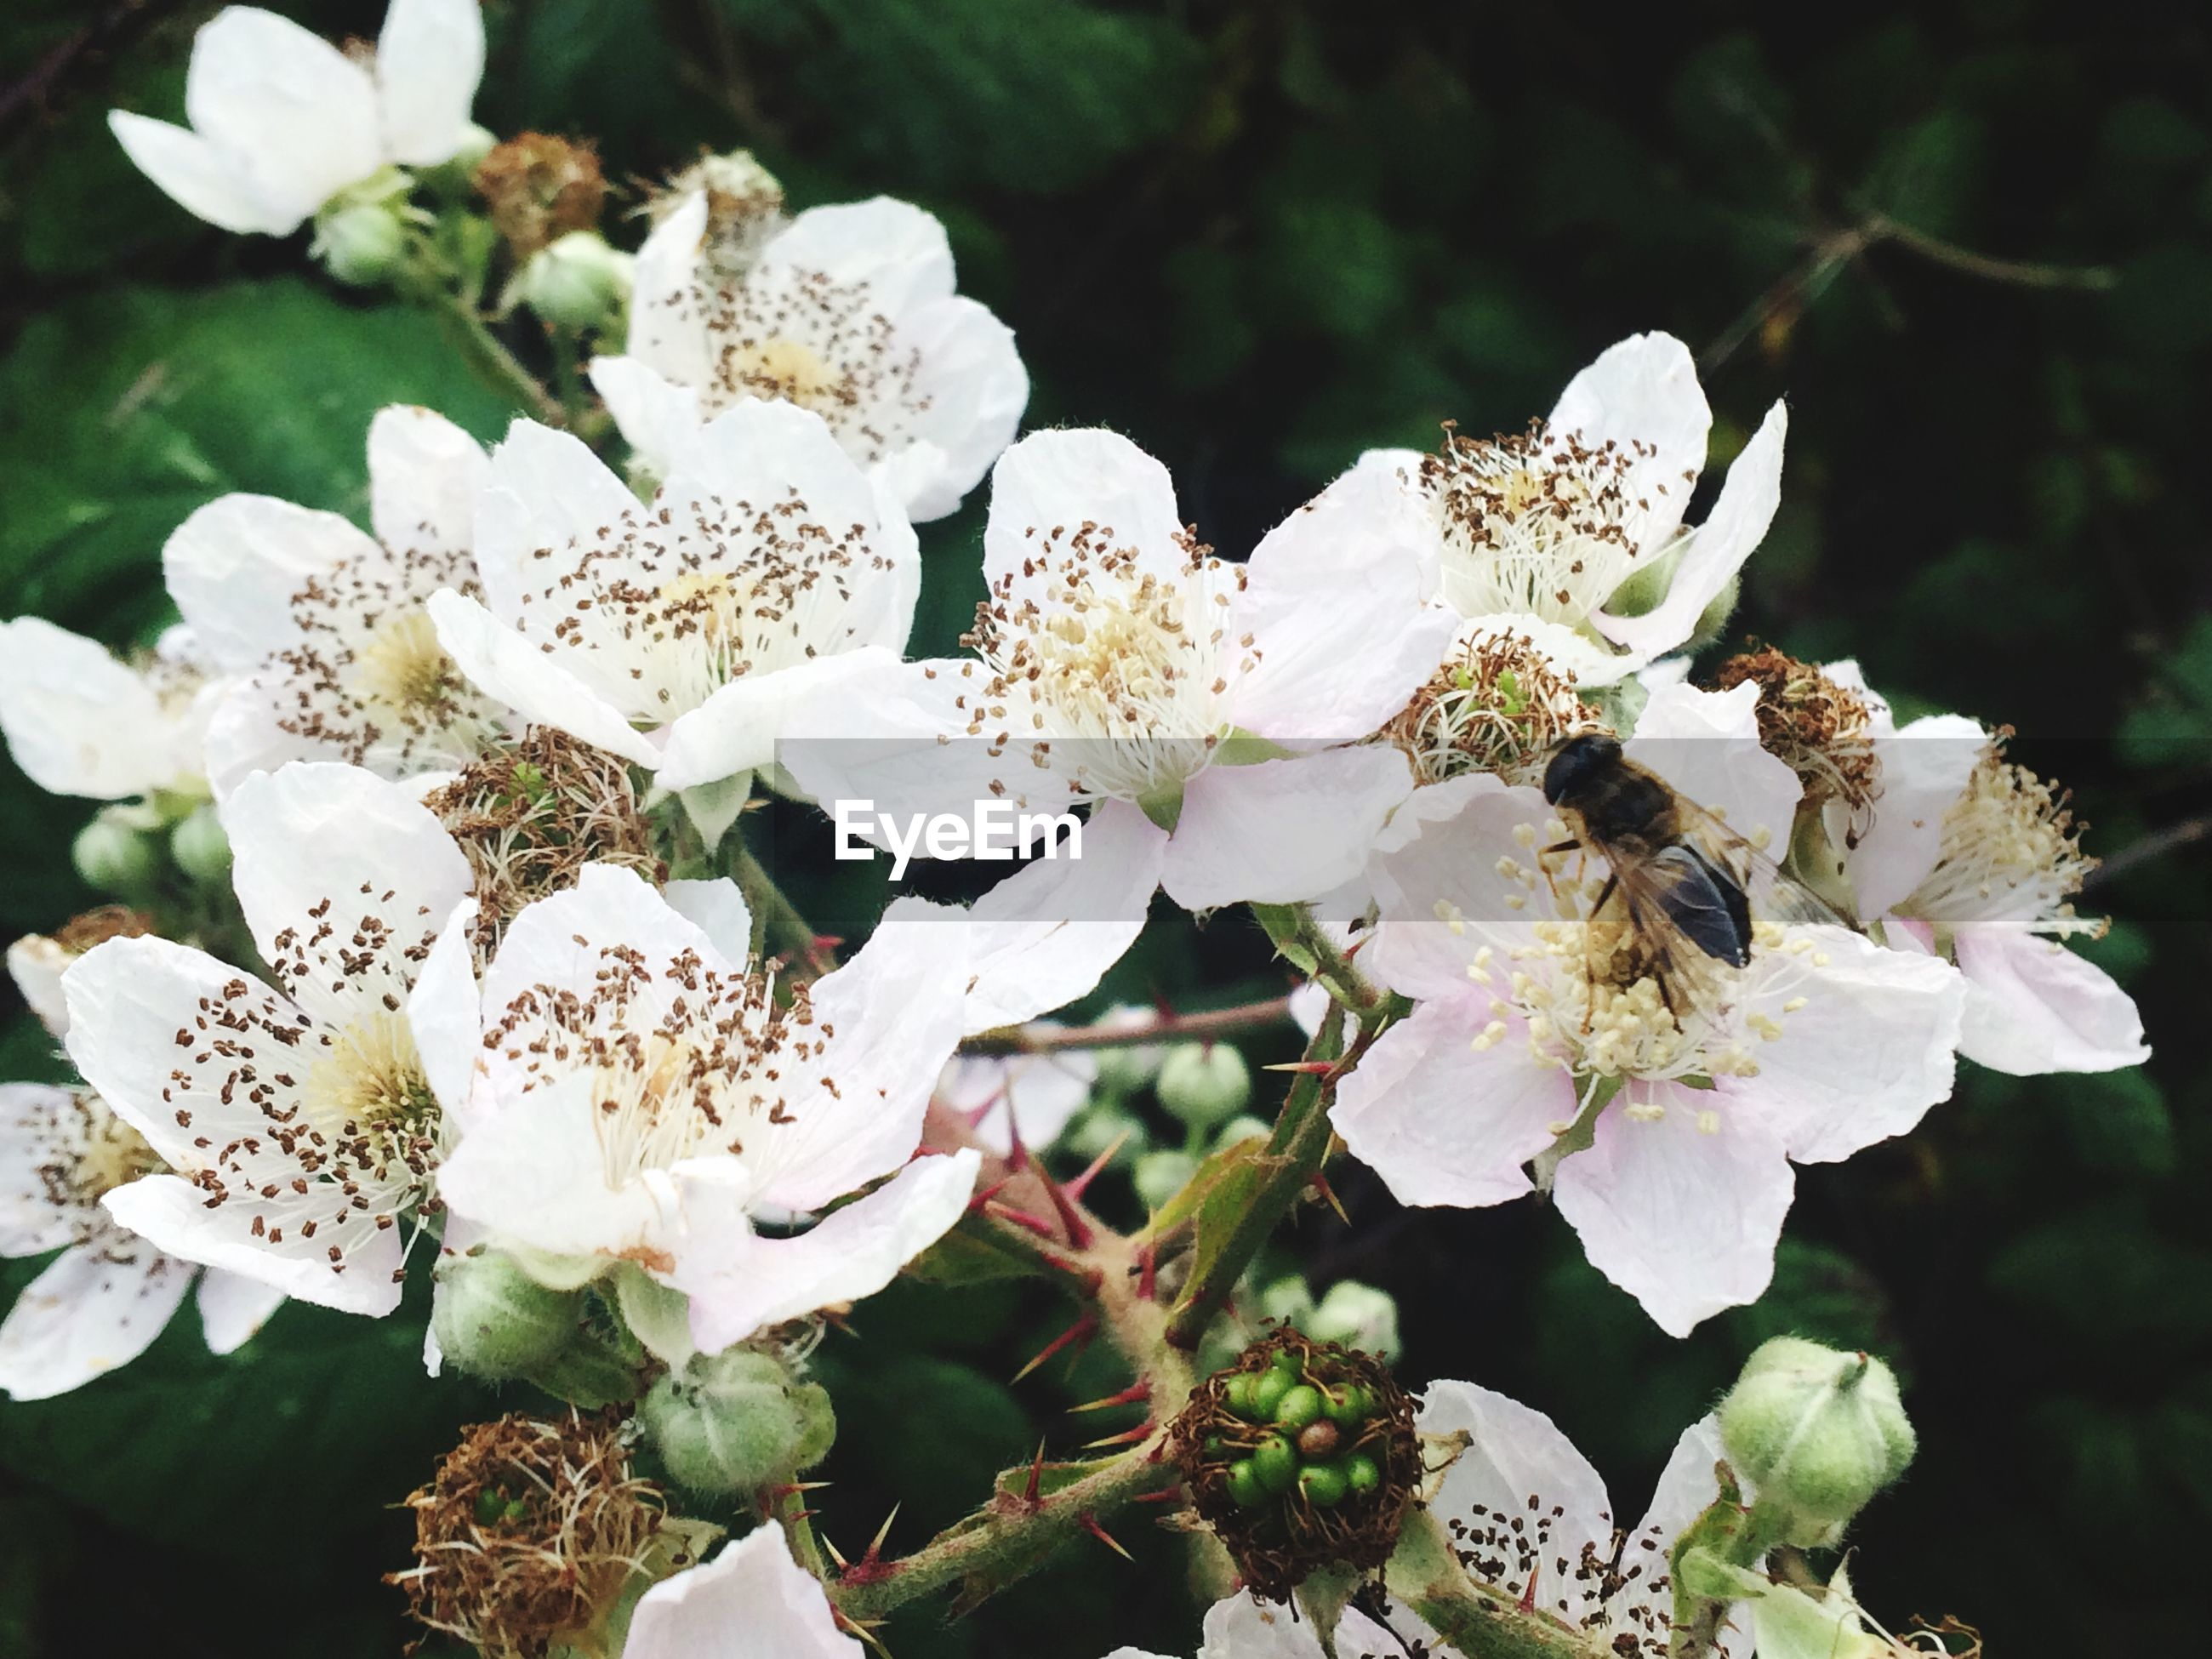 Close-up of bee pollinating on white flower growing at plant